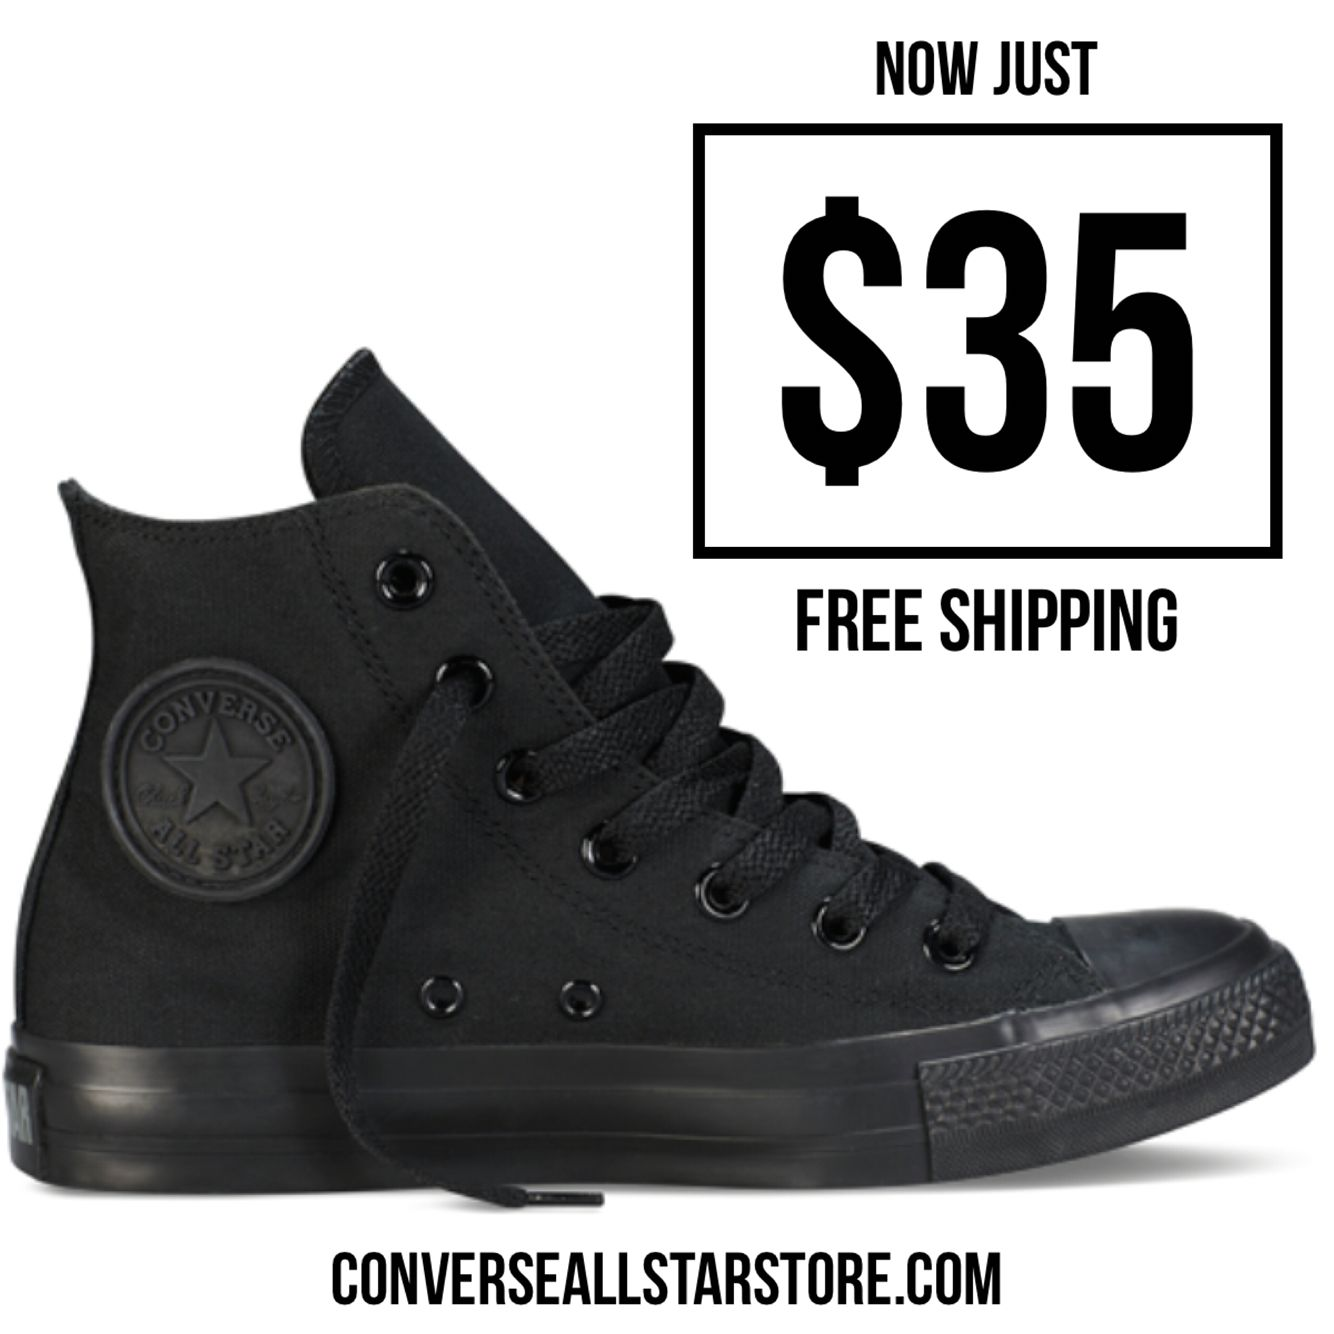 3920b3ea144e Now from just  35 pair. Free shipping worldwide. Shop on our website   converseallstarstore.com